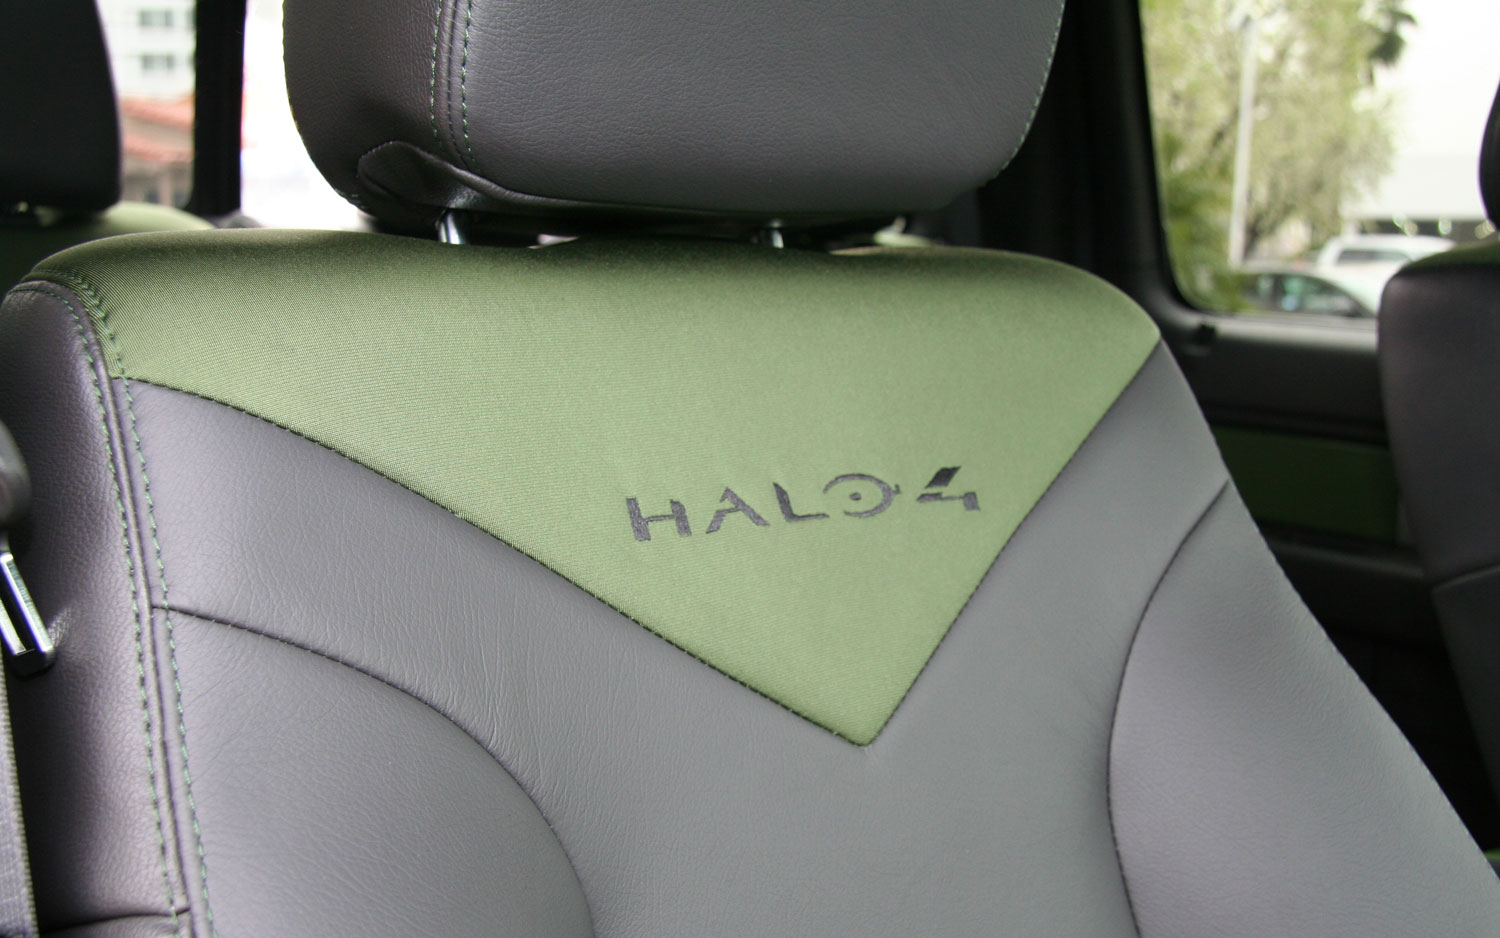 2013 Ford F150 Raptor Halo 4 Upholstery Detail